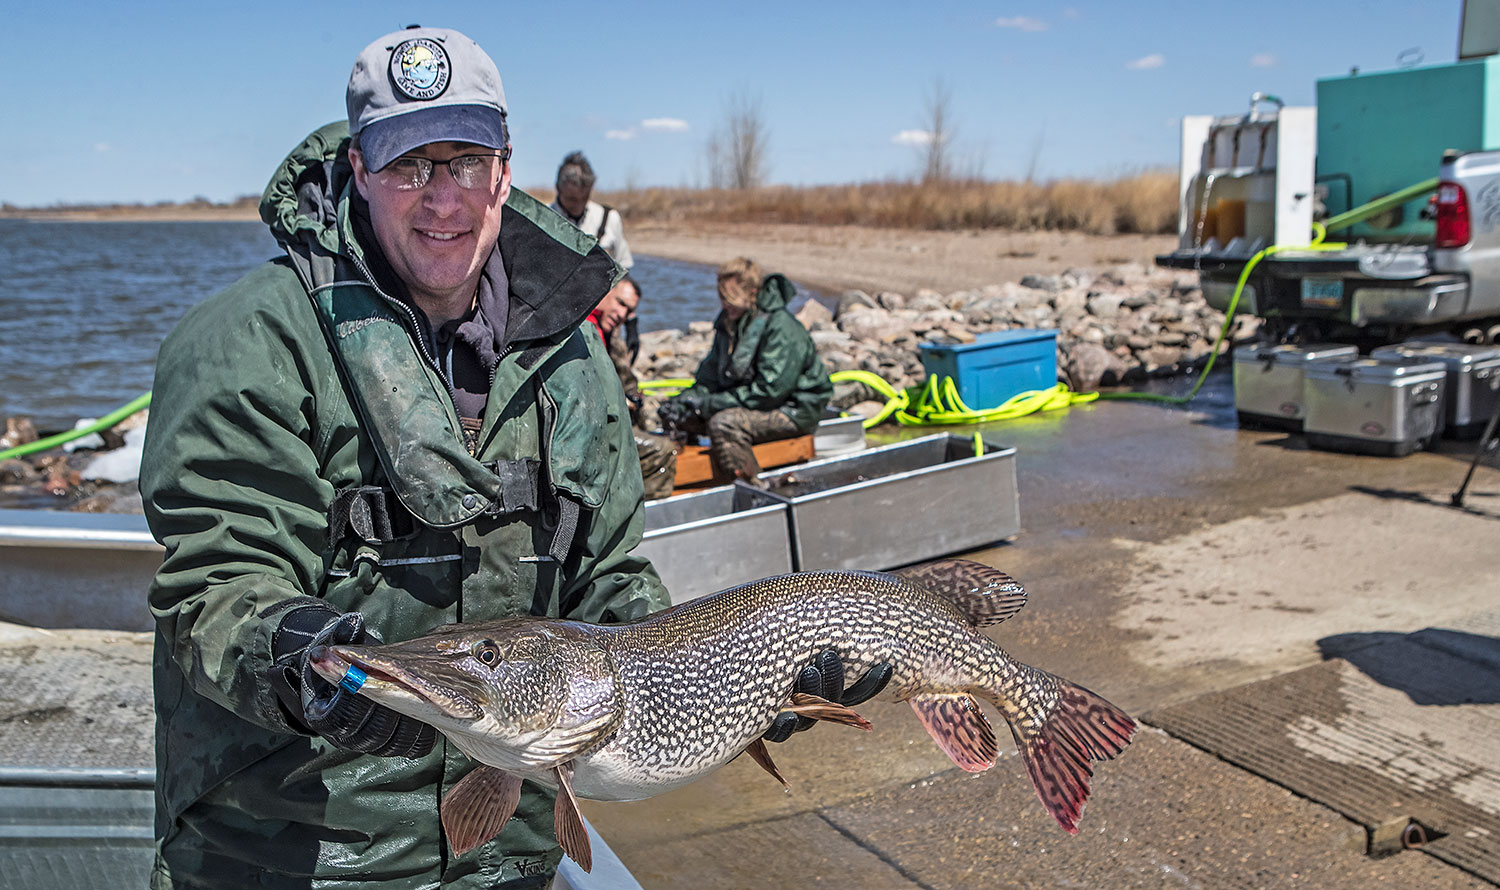 Fisheries biologist holding northern pike